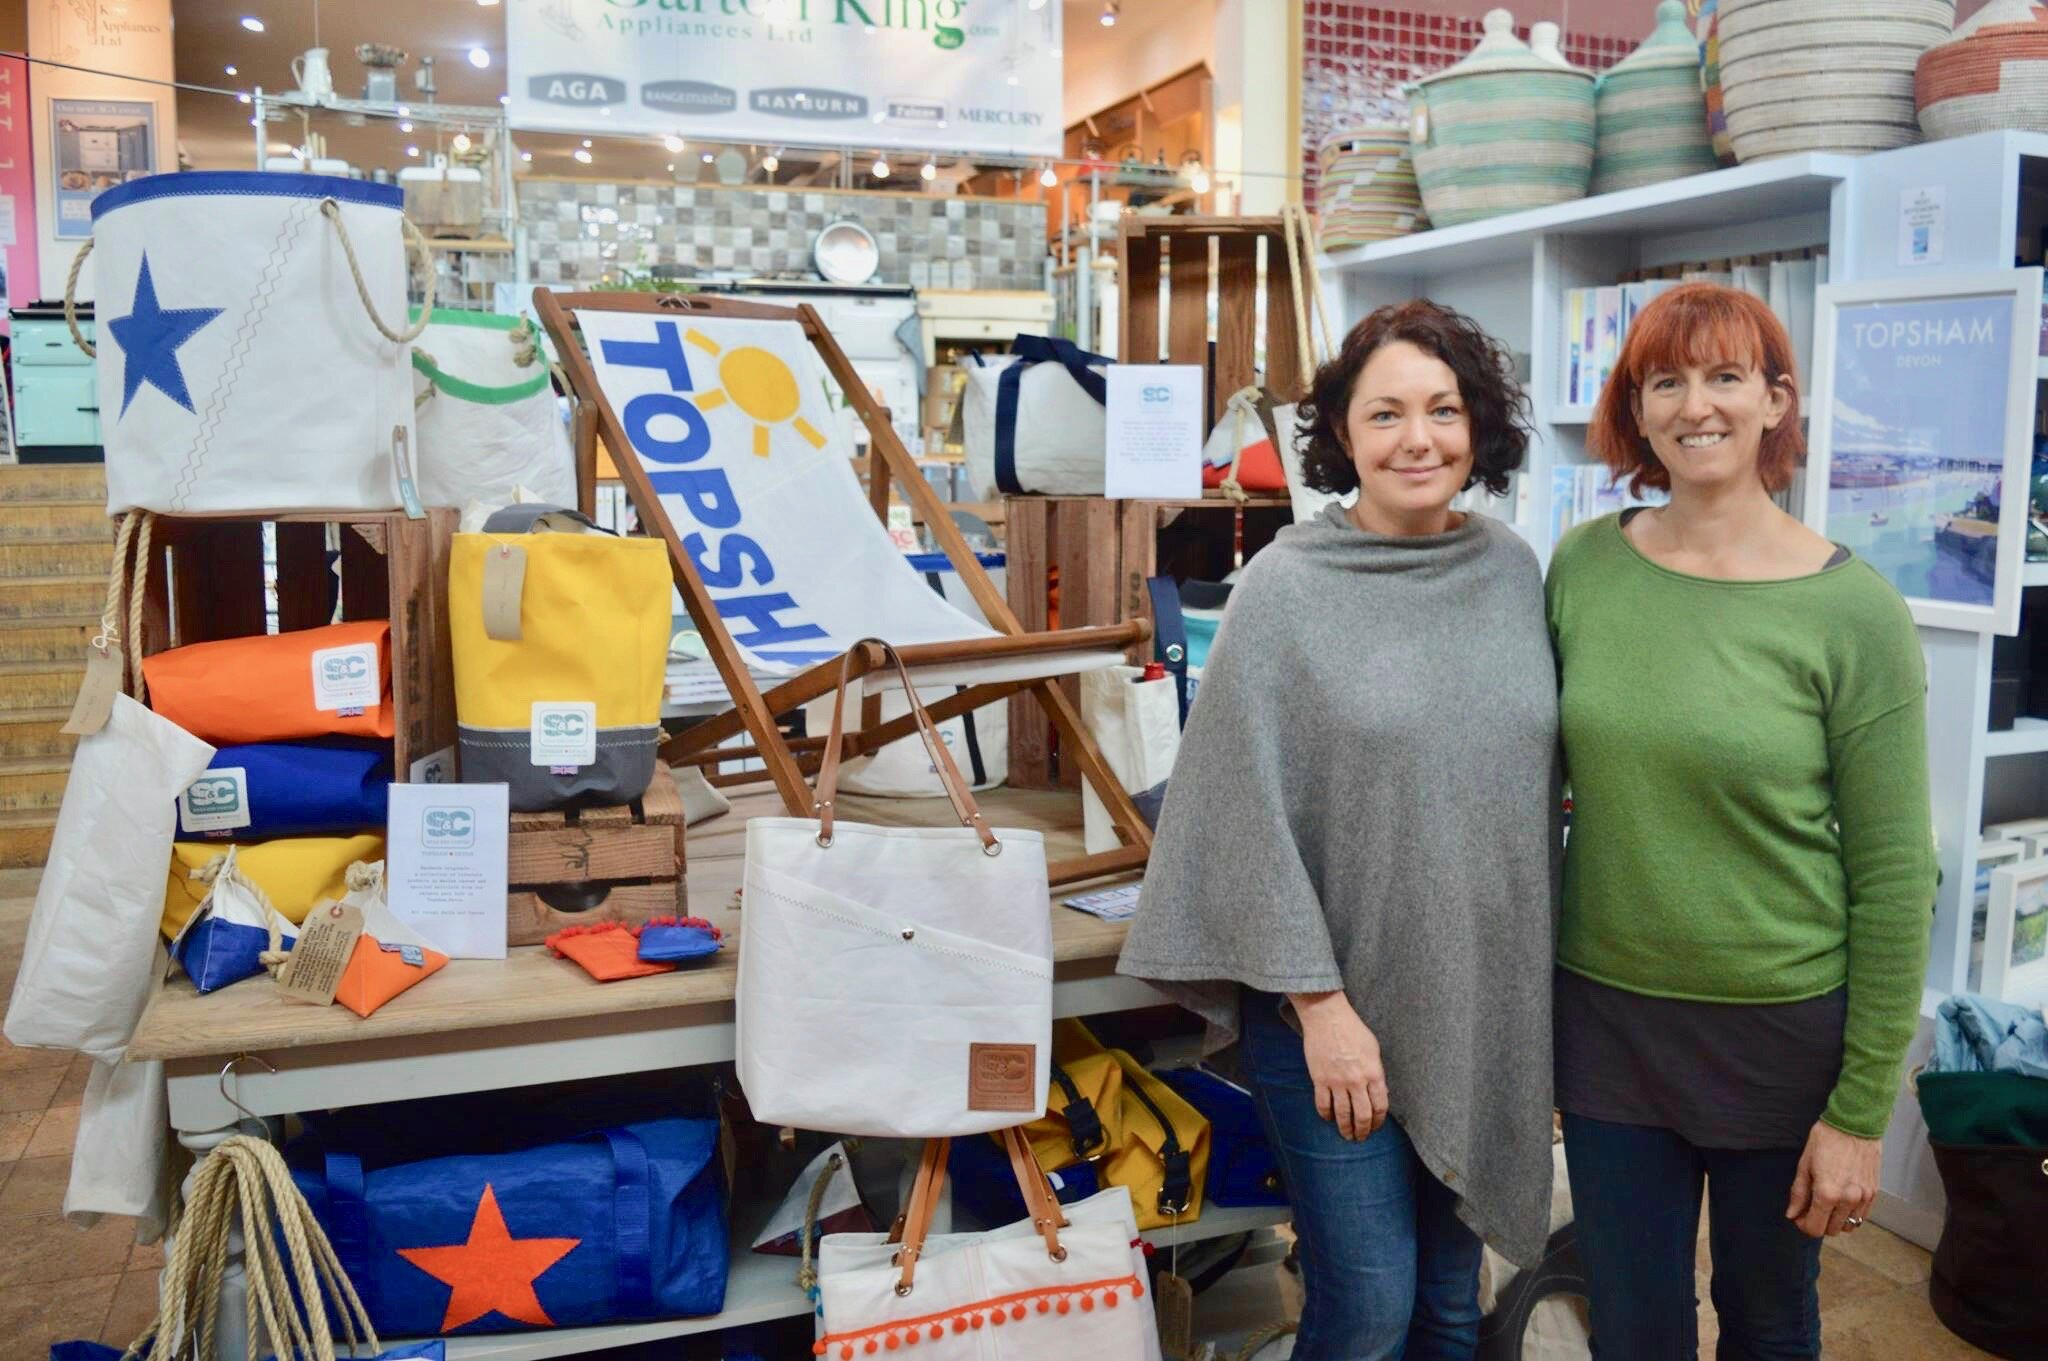 Image: Juliette and Mandi from Sails and Canvas   (courtesy of Sails and Canvas)